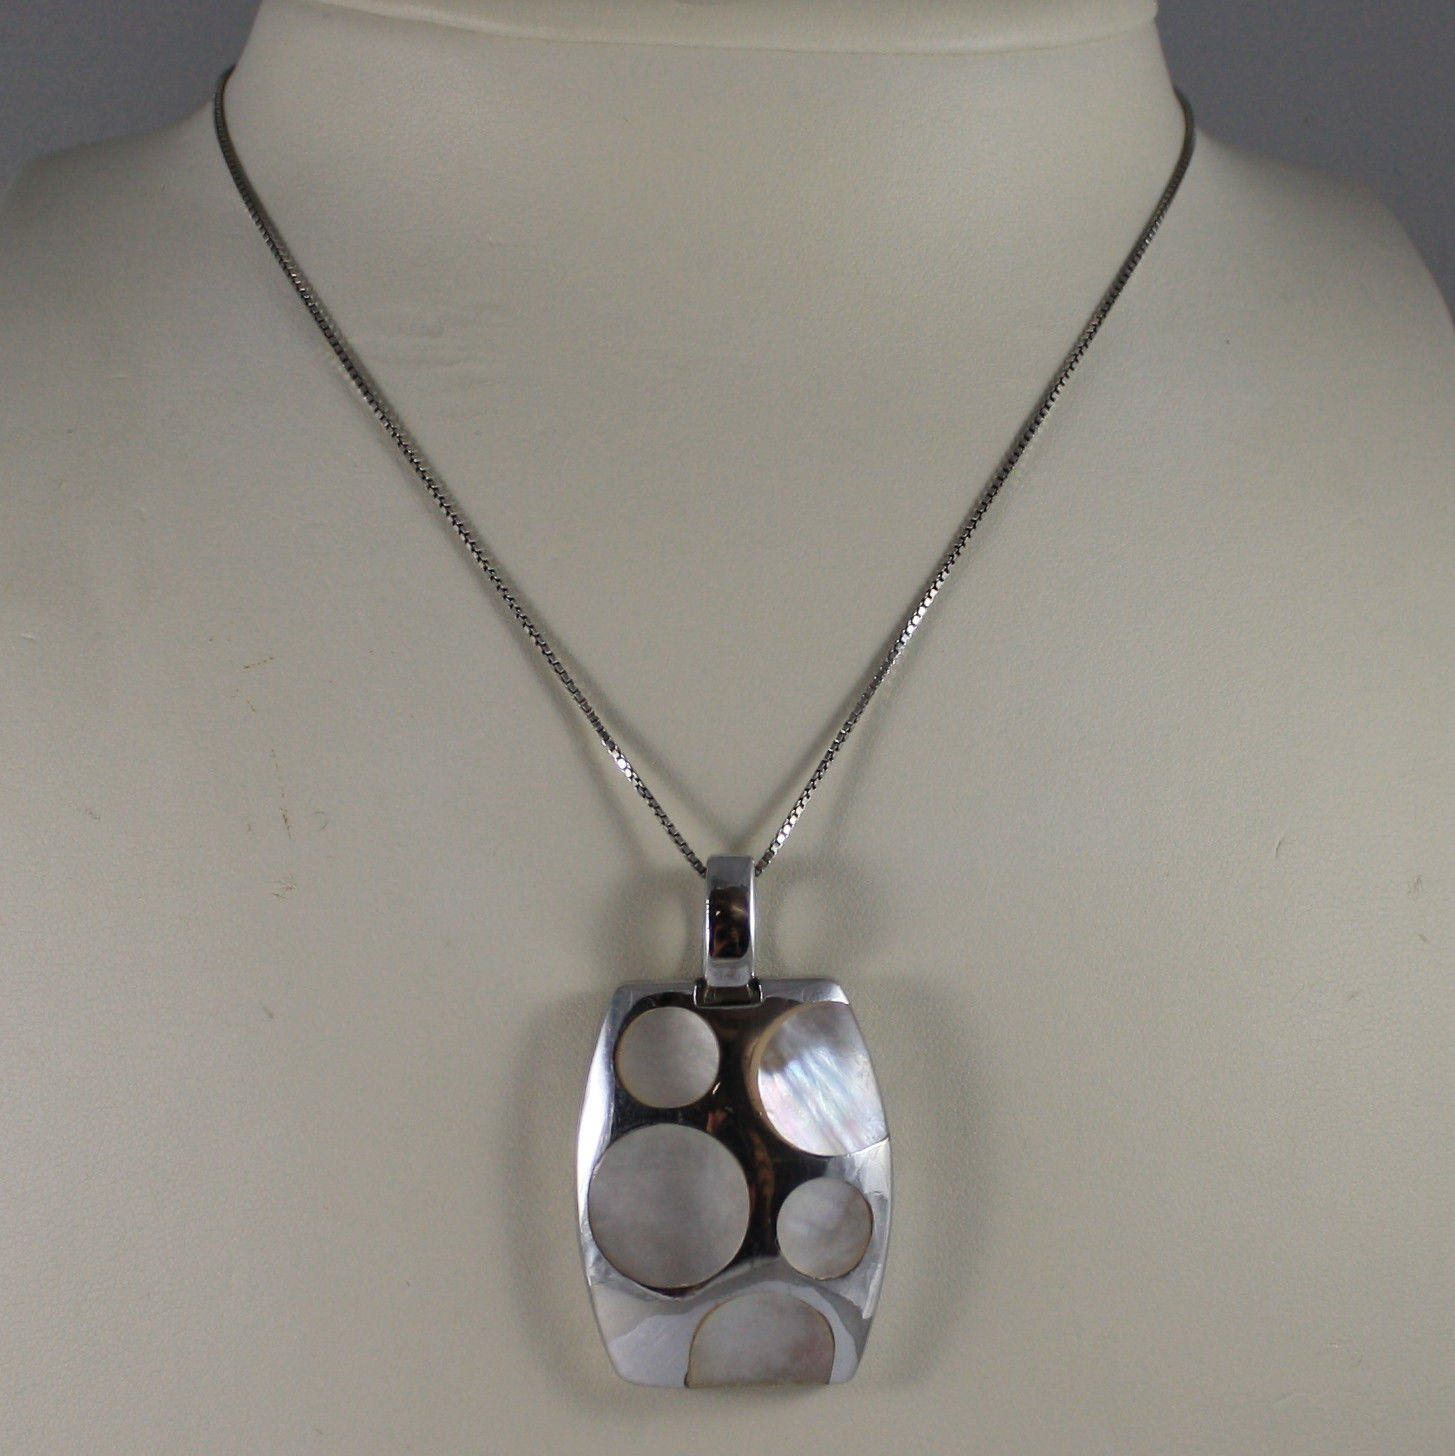 .925 SILVER RHODIUM NECKLACE WITH RECTANGULAR PENDANT WITH MOTHER OF PEARL DISC